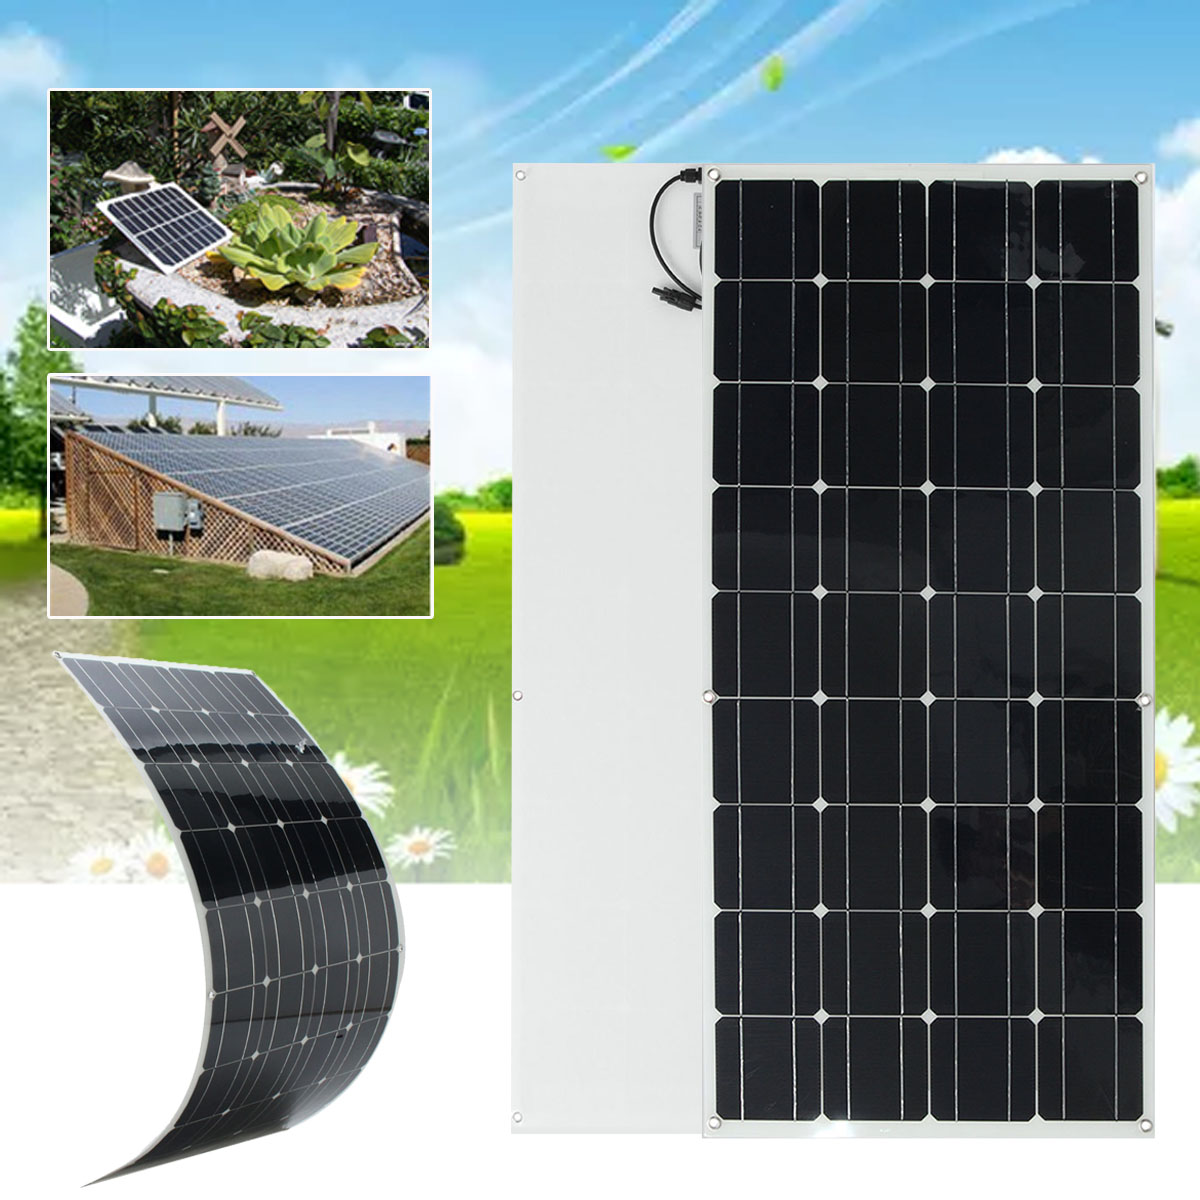 KINCO Flexible Solar Panel Plate 200W 18V Solar Charger For Car Battery 12V Sunpower Monocrystalline Silicon Cells Module Kit fashion laptop sleeve for macbook air 13 pro 13 15 case waterproof felt laptop bag case for xiaomi notebook air 13 3 laptop bags